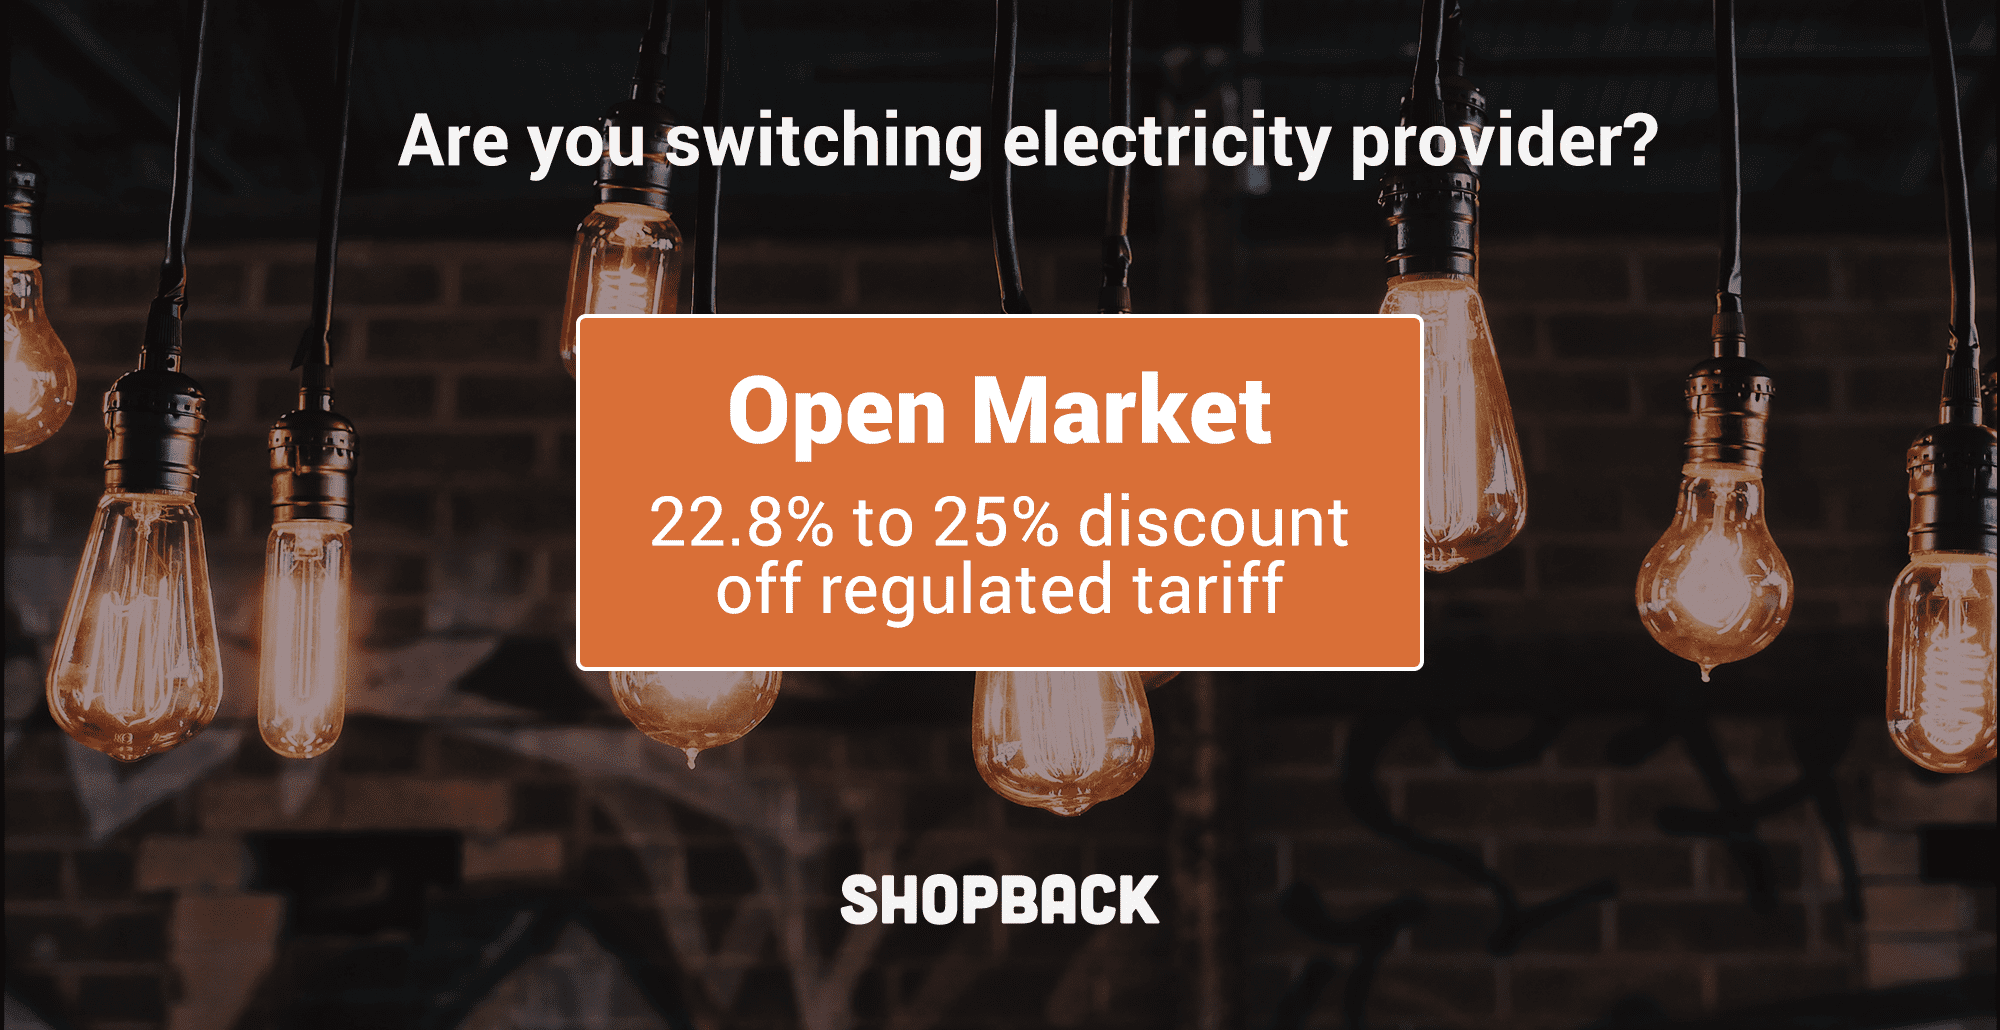 Singapore's Open Electricity Market: A Simple Comparison